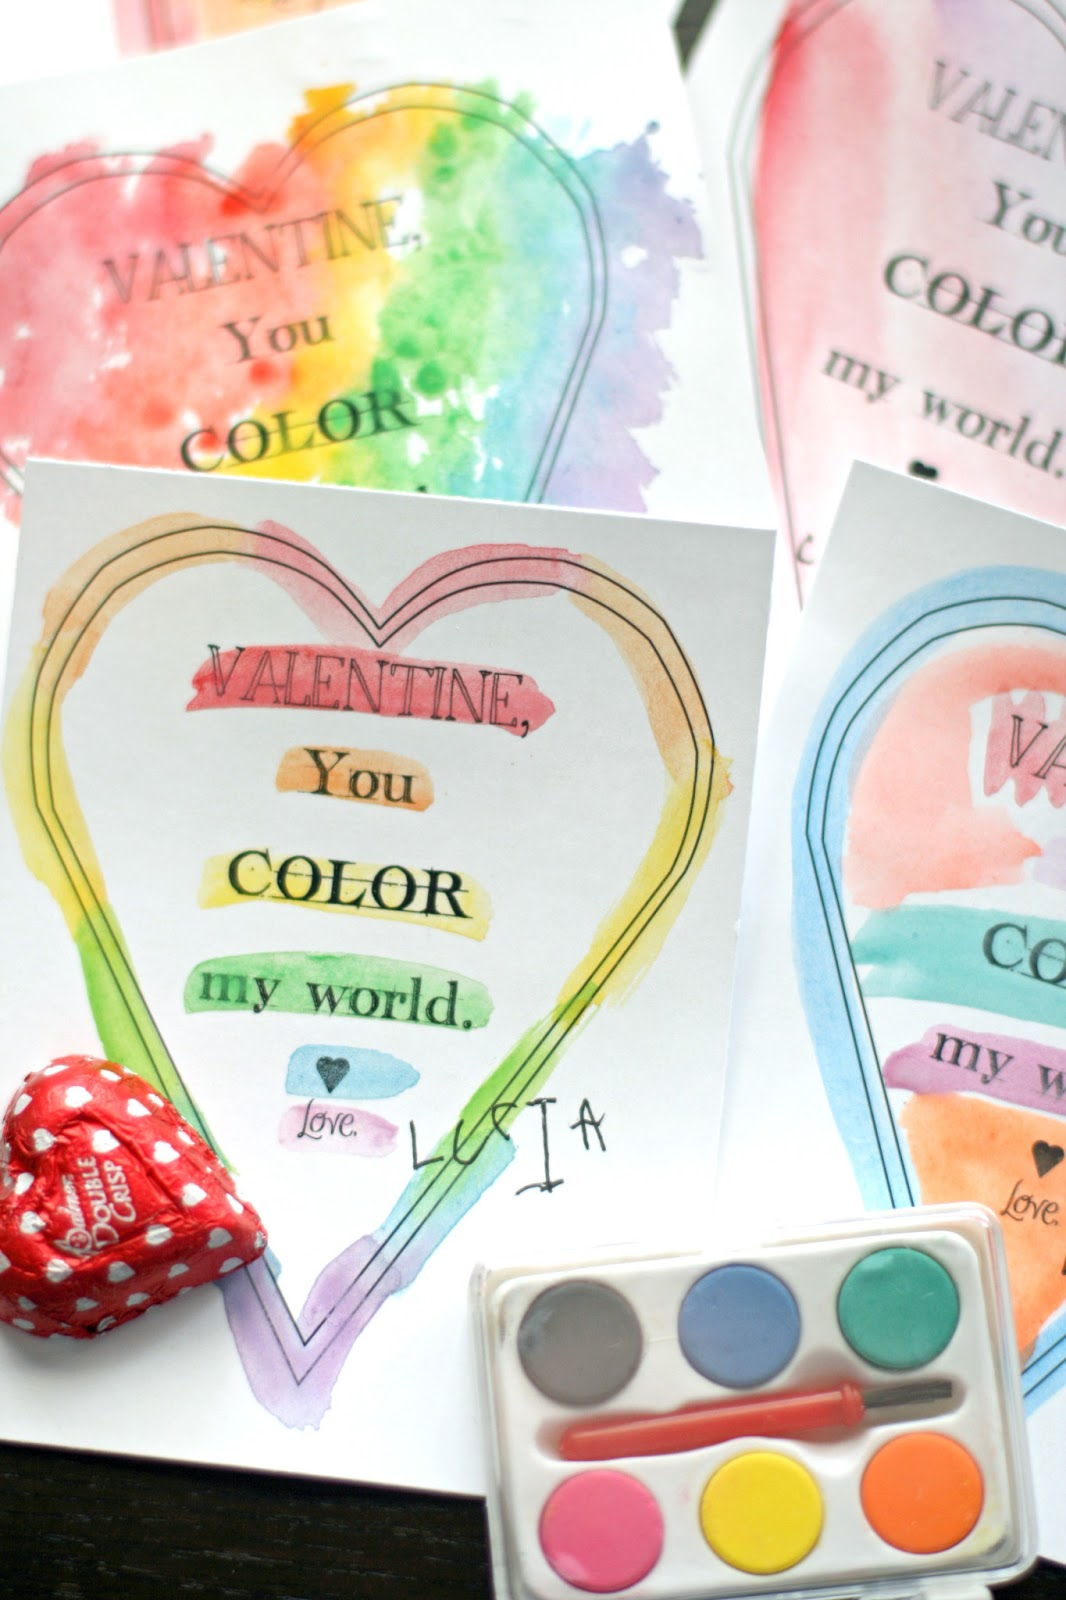 Valentine, You Color My World Template.